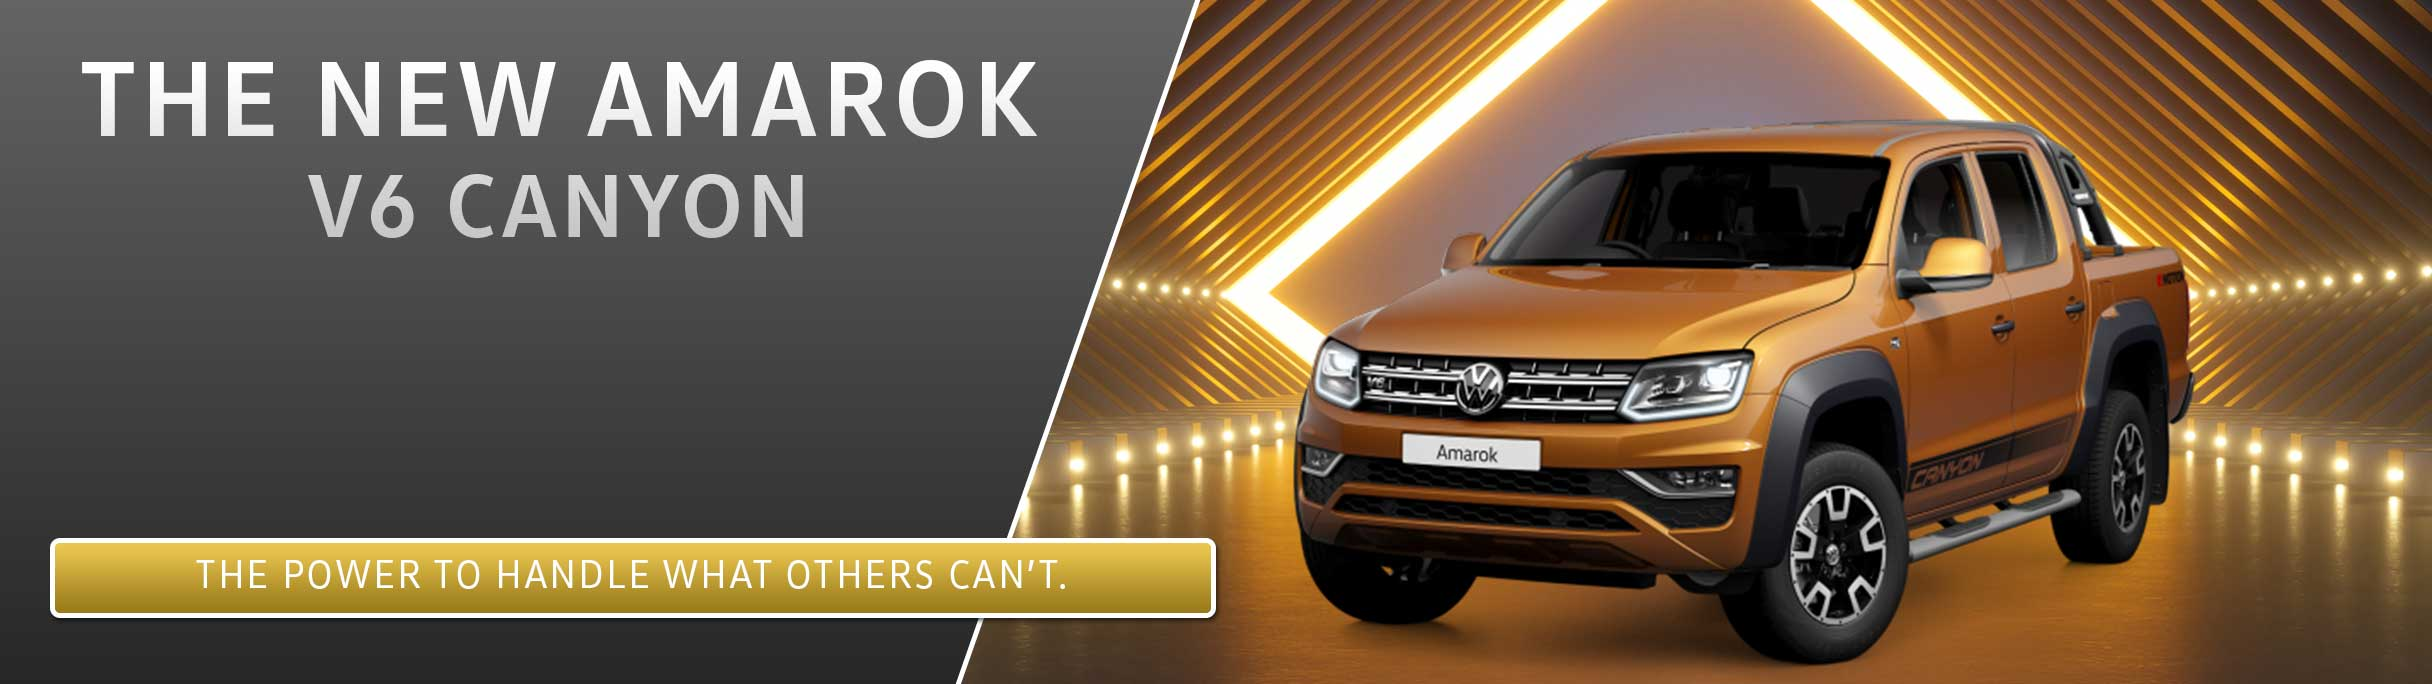 Barons Kuruman new amarok offer banner